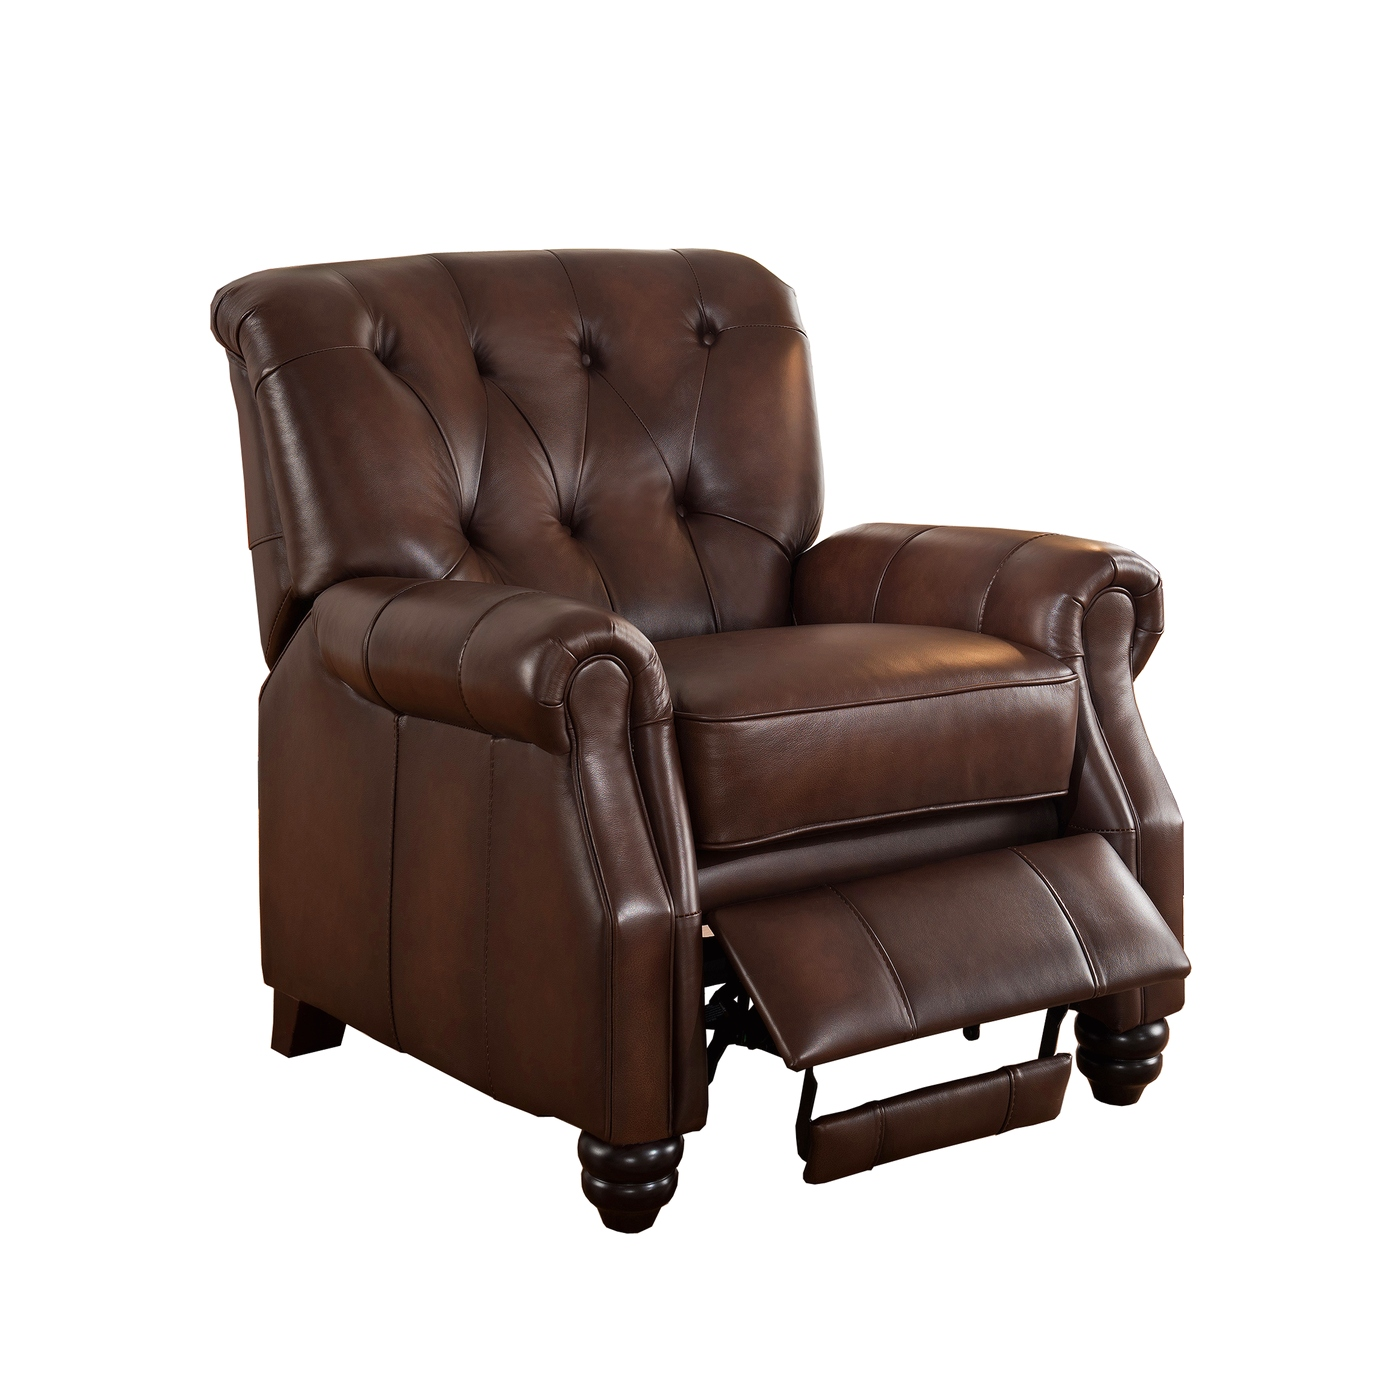 Best Leather Chairs Covington Traditional Top Grain Brown Leather Pushback